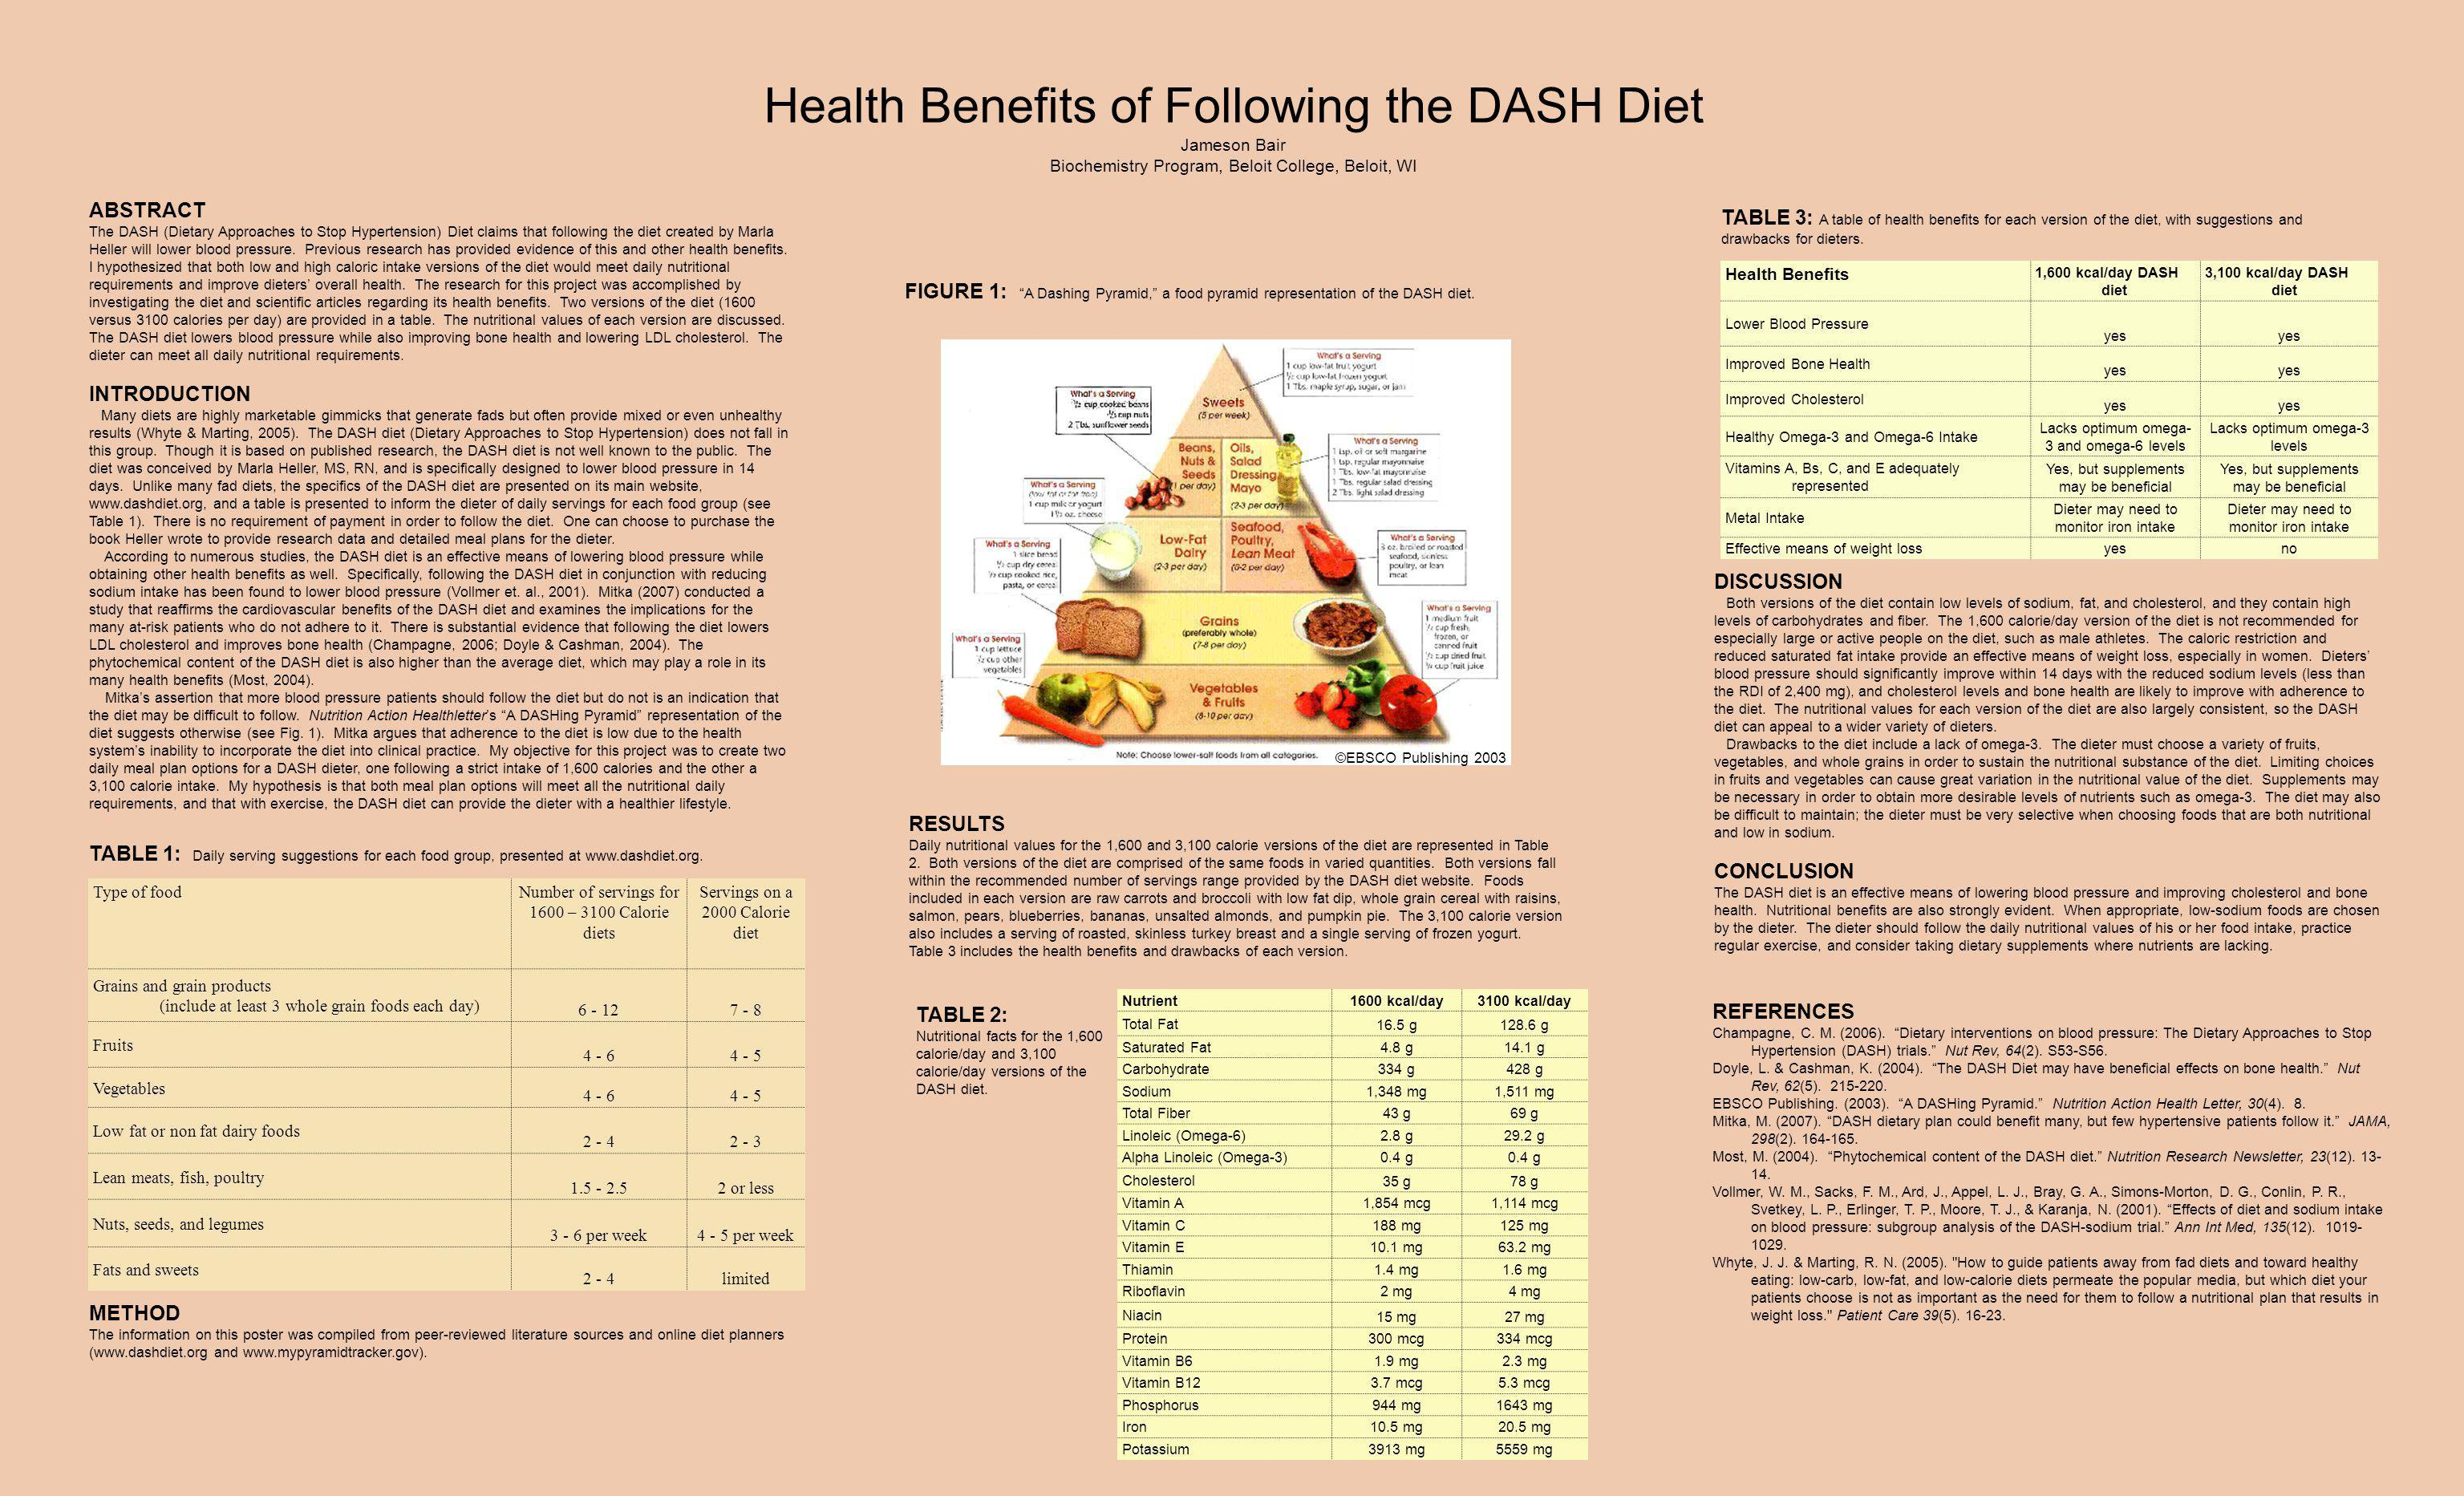 Health Benefits of Following the DASH Diet Jameson Bair Biochemistry Program, Beloit College, Beloit, WI Type of foodNumber of servings for 1600 – 3100 Calorie diets Servings on a 2000 Calorie diet Grains and grain products (include at least 3 whole grain foods each day) 6 - 127 - 8 Fruits 4 - 64 - 5 Vegetables 4 - 64 - 5 Low fat or non fat dairy foods 2 - 42 - 3 Lean meats, fish, poultry 1.5 - 2.52 or less Nuts, seeds, and legumes 3 - 6 per week4 - 5 per week Fats and sweets 2 - 4limited Nutrient1600 kcal/day3100 kcal/day Total Fat 16.5 g128.6 g Saturated Fat4.8 g14.1 g Carbohydrate334 g428 g Sodium1,348 mg1,511 mg Total Fiber43 g69 g Linoleic (Omega-6)2.8 g29.2 g Alpha Linoleic (Omega-3)0.4 g Cholesterol 35 g78 g Vitamin A1,854 mcg1,114 mcg Vitamin C188 mg125 mg Vitamin E10.1 mg63.2 mg Thiamin1.4 mg1.6 mg Riboflavin2 mg4 mg Niacin 15 mg27 mg Protein300 mcg334 mcg Vitamin B61.9 mg2.3 mg Vitamin B123.7 mcg5.3 mcg Phosphorus944 mg1643 mg Iron10.5 mg20.5 mg Potassium3913 mg5559 mg ABSTRACT The DASH (Dietary Approaches to Stop Hypertension) Diet claims that following the diet created by Marla Heller will lower blood pressure.